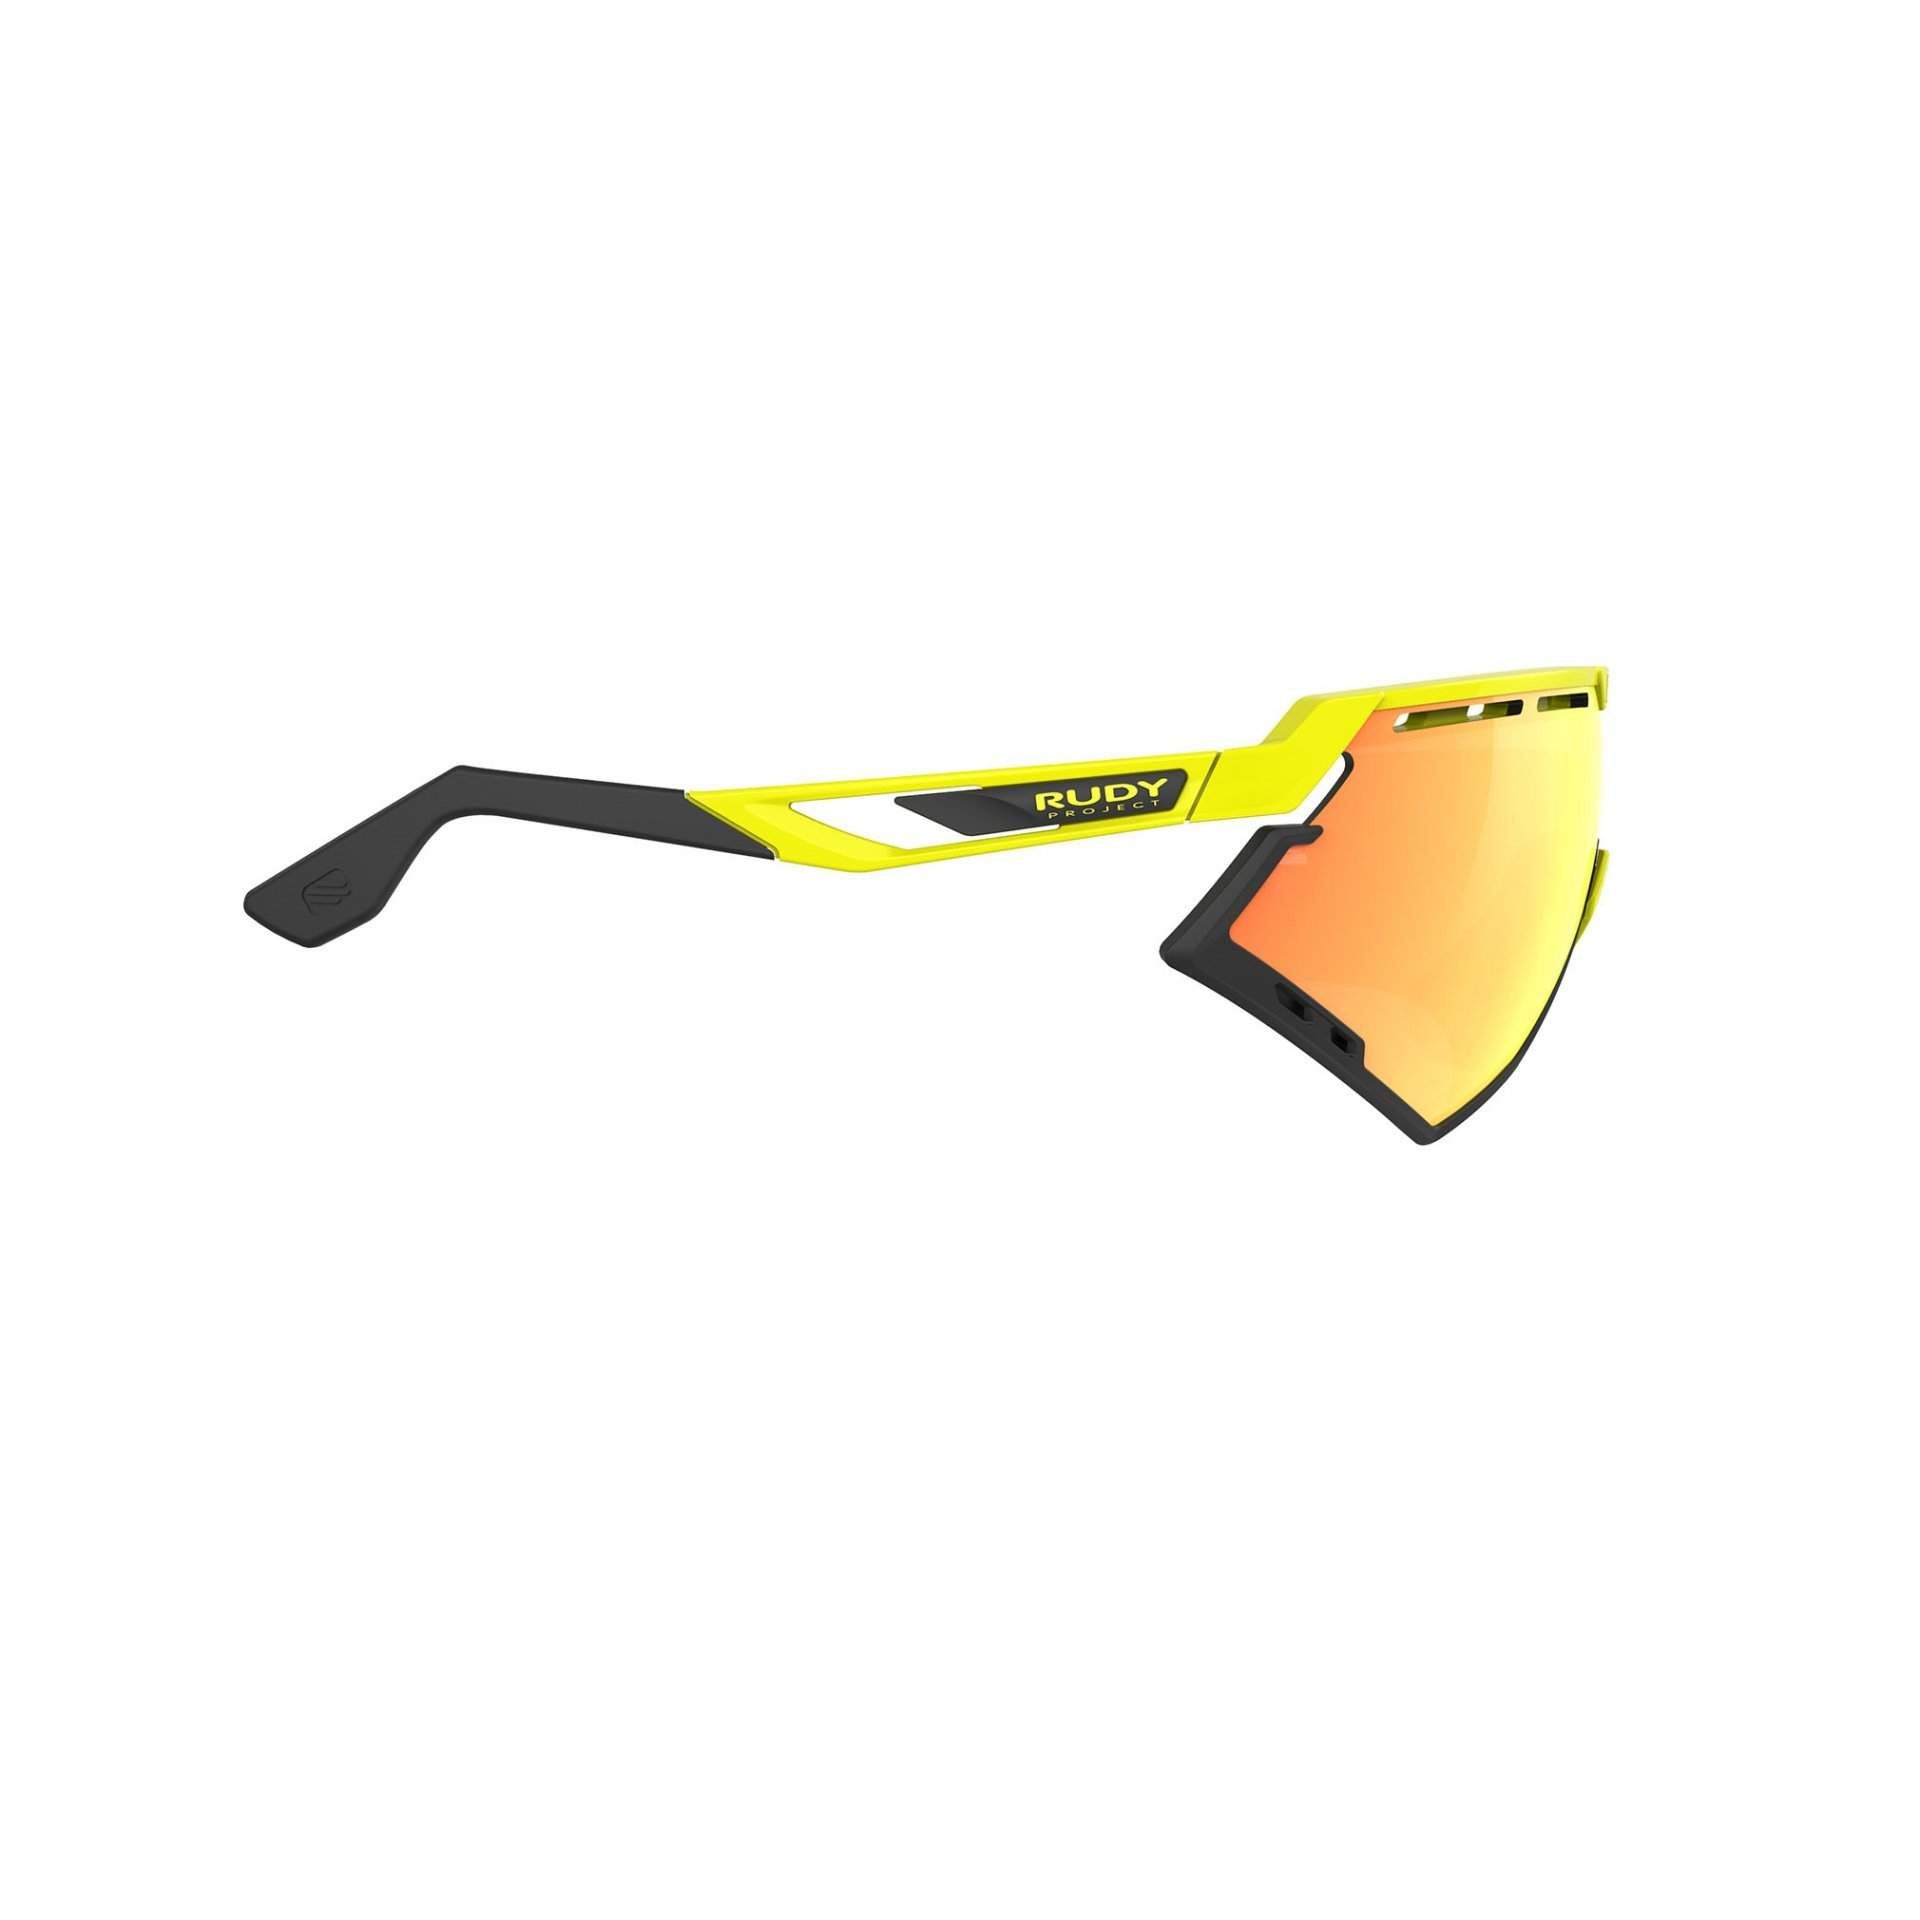 OKULARY RUDY PROJECT DEFENDER MULTILASER ORANGE + YELLOW FLUO GLOSS BUMPERS BLACK SP5240760000 Z BOKU